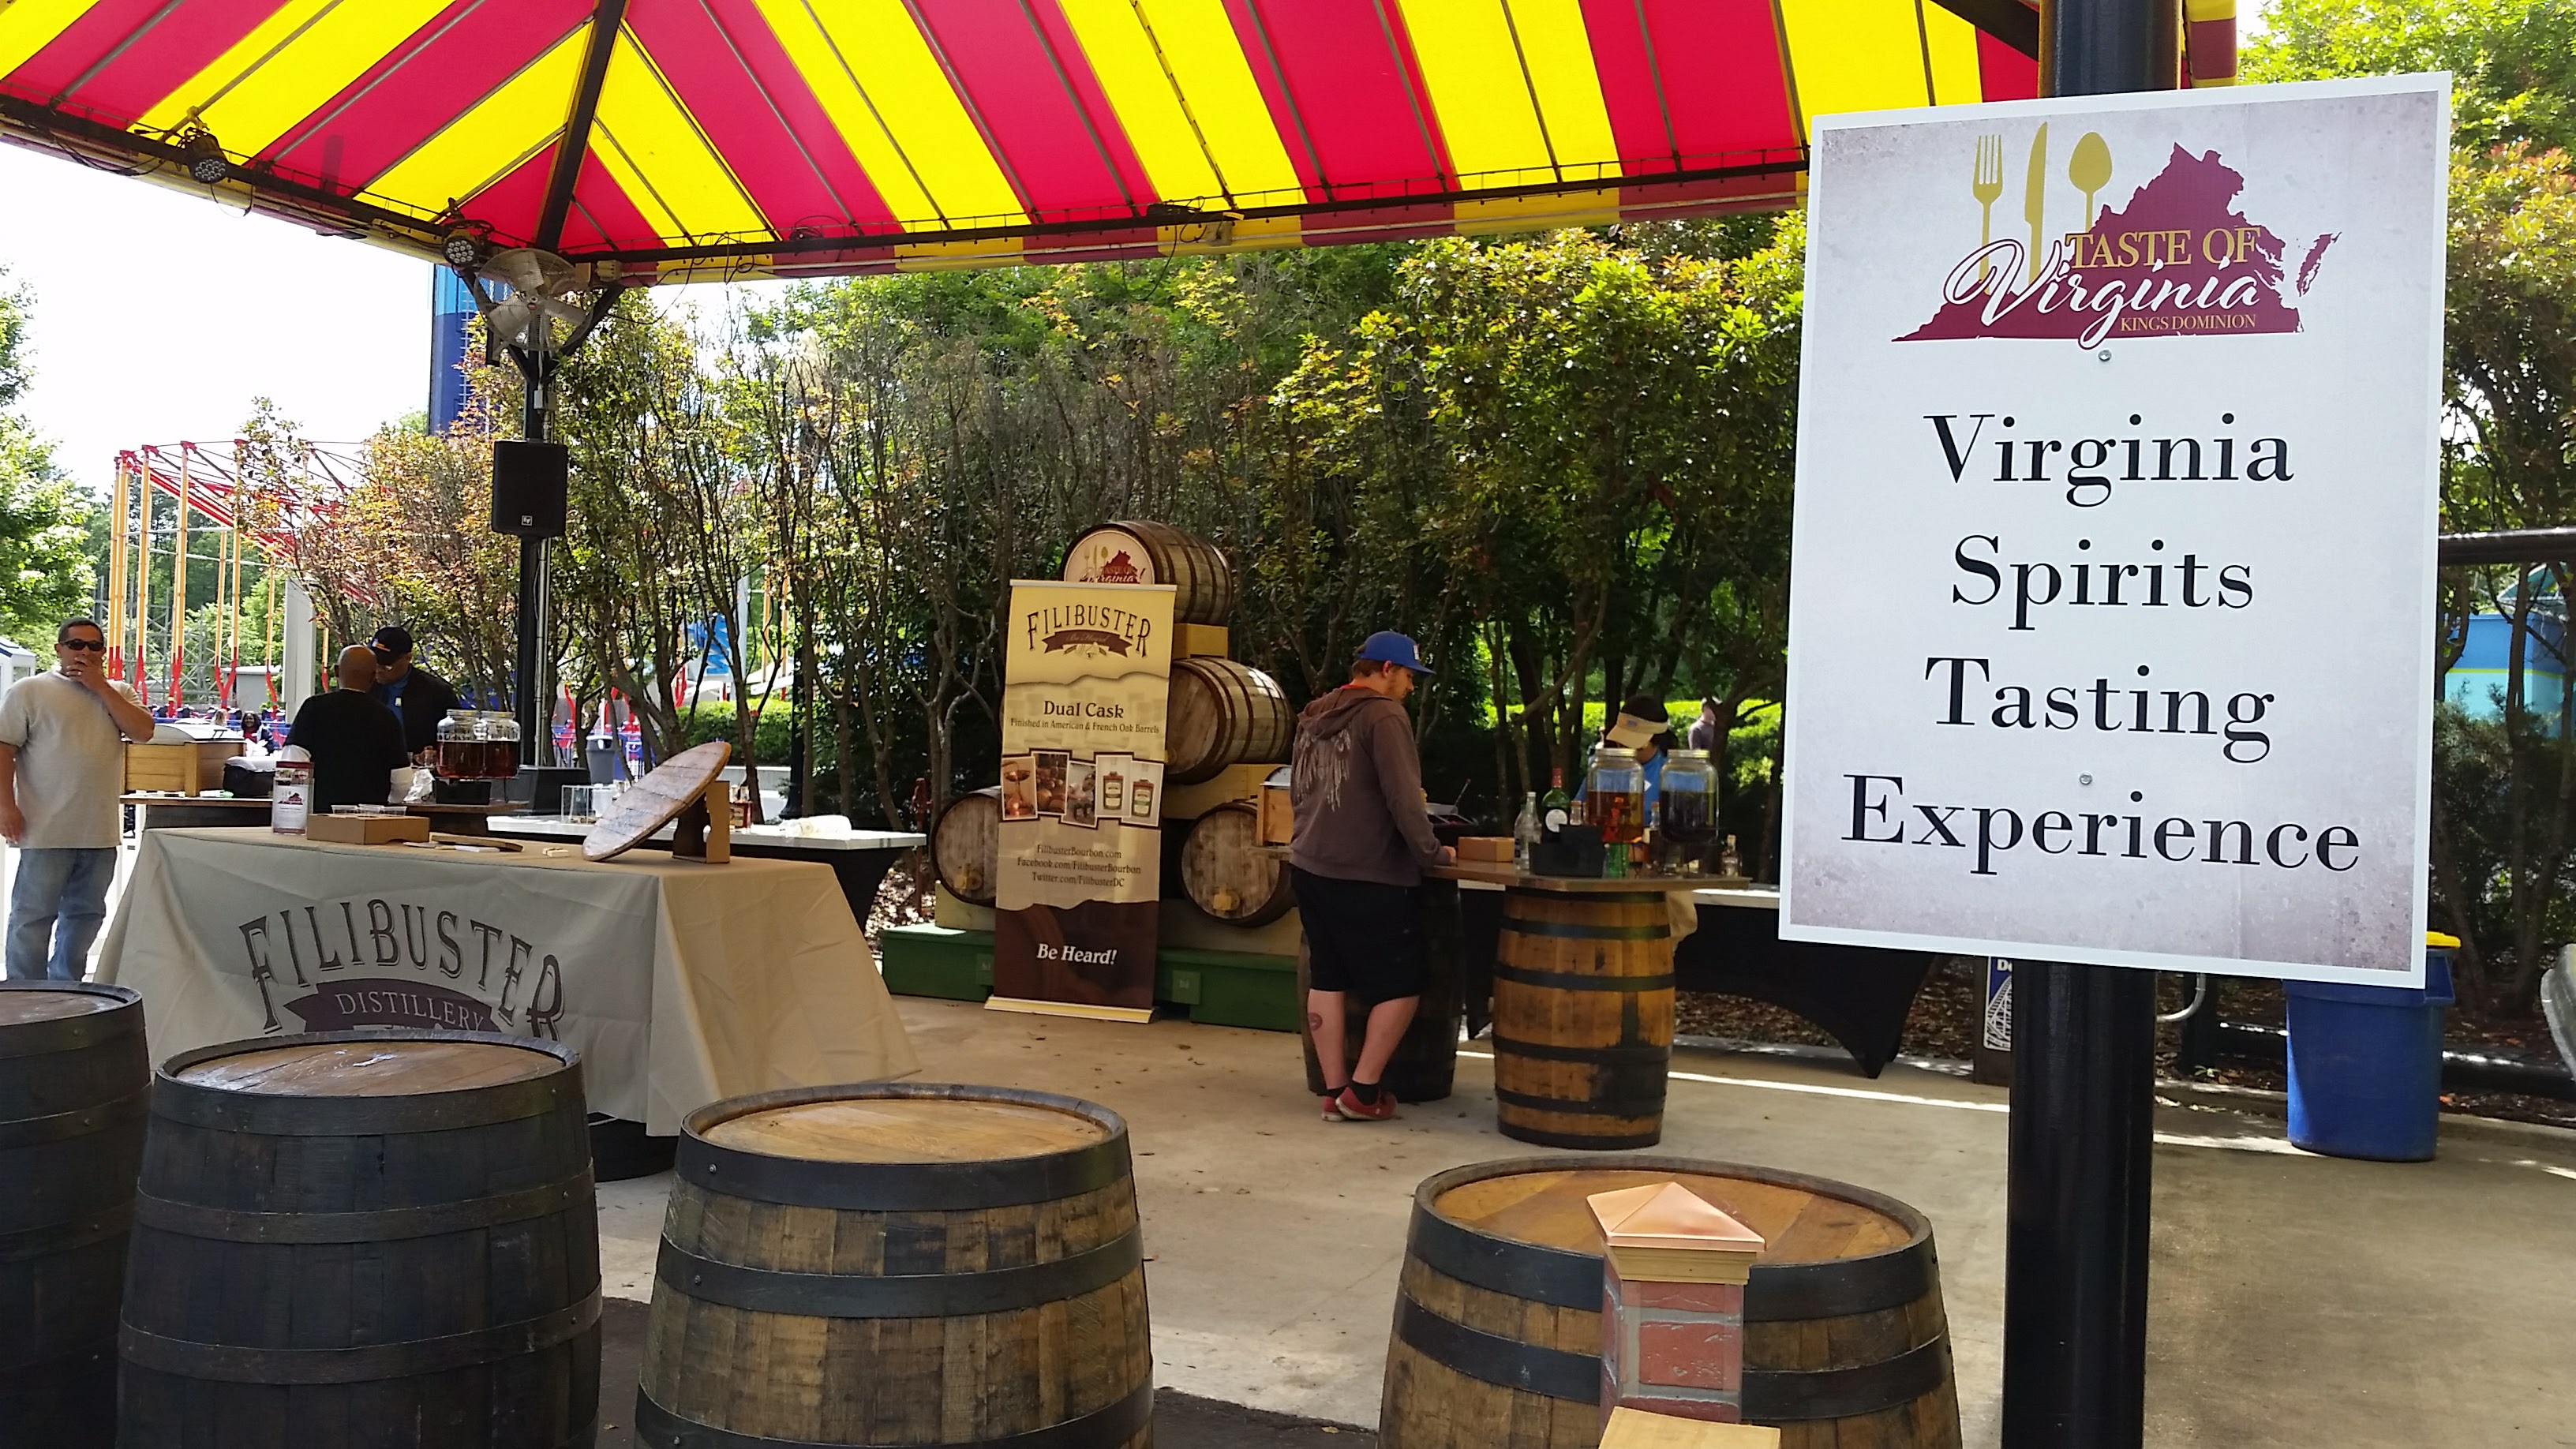 Spirits sampling tent at Taste of Virginia at Kings Dominion